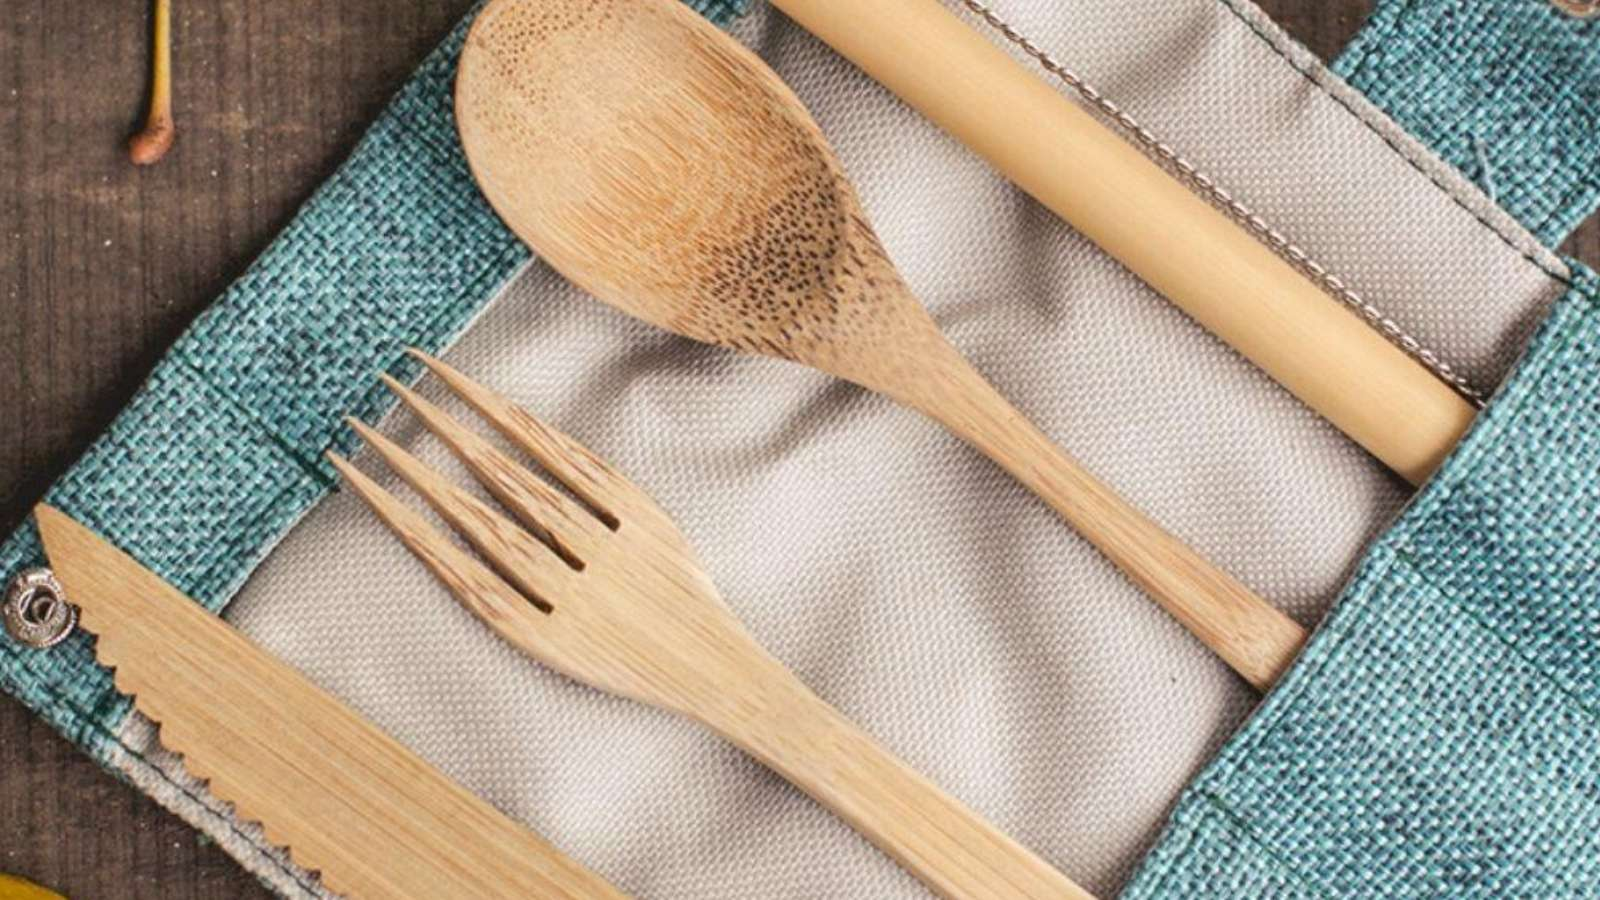 Where can I buy bamboo cutlery?